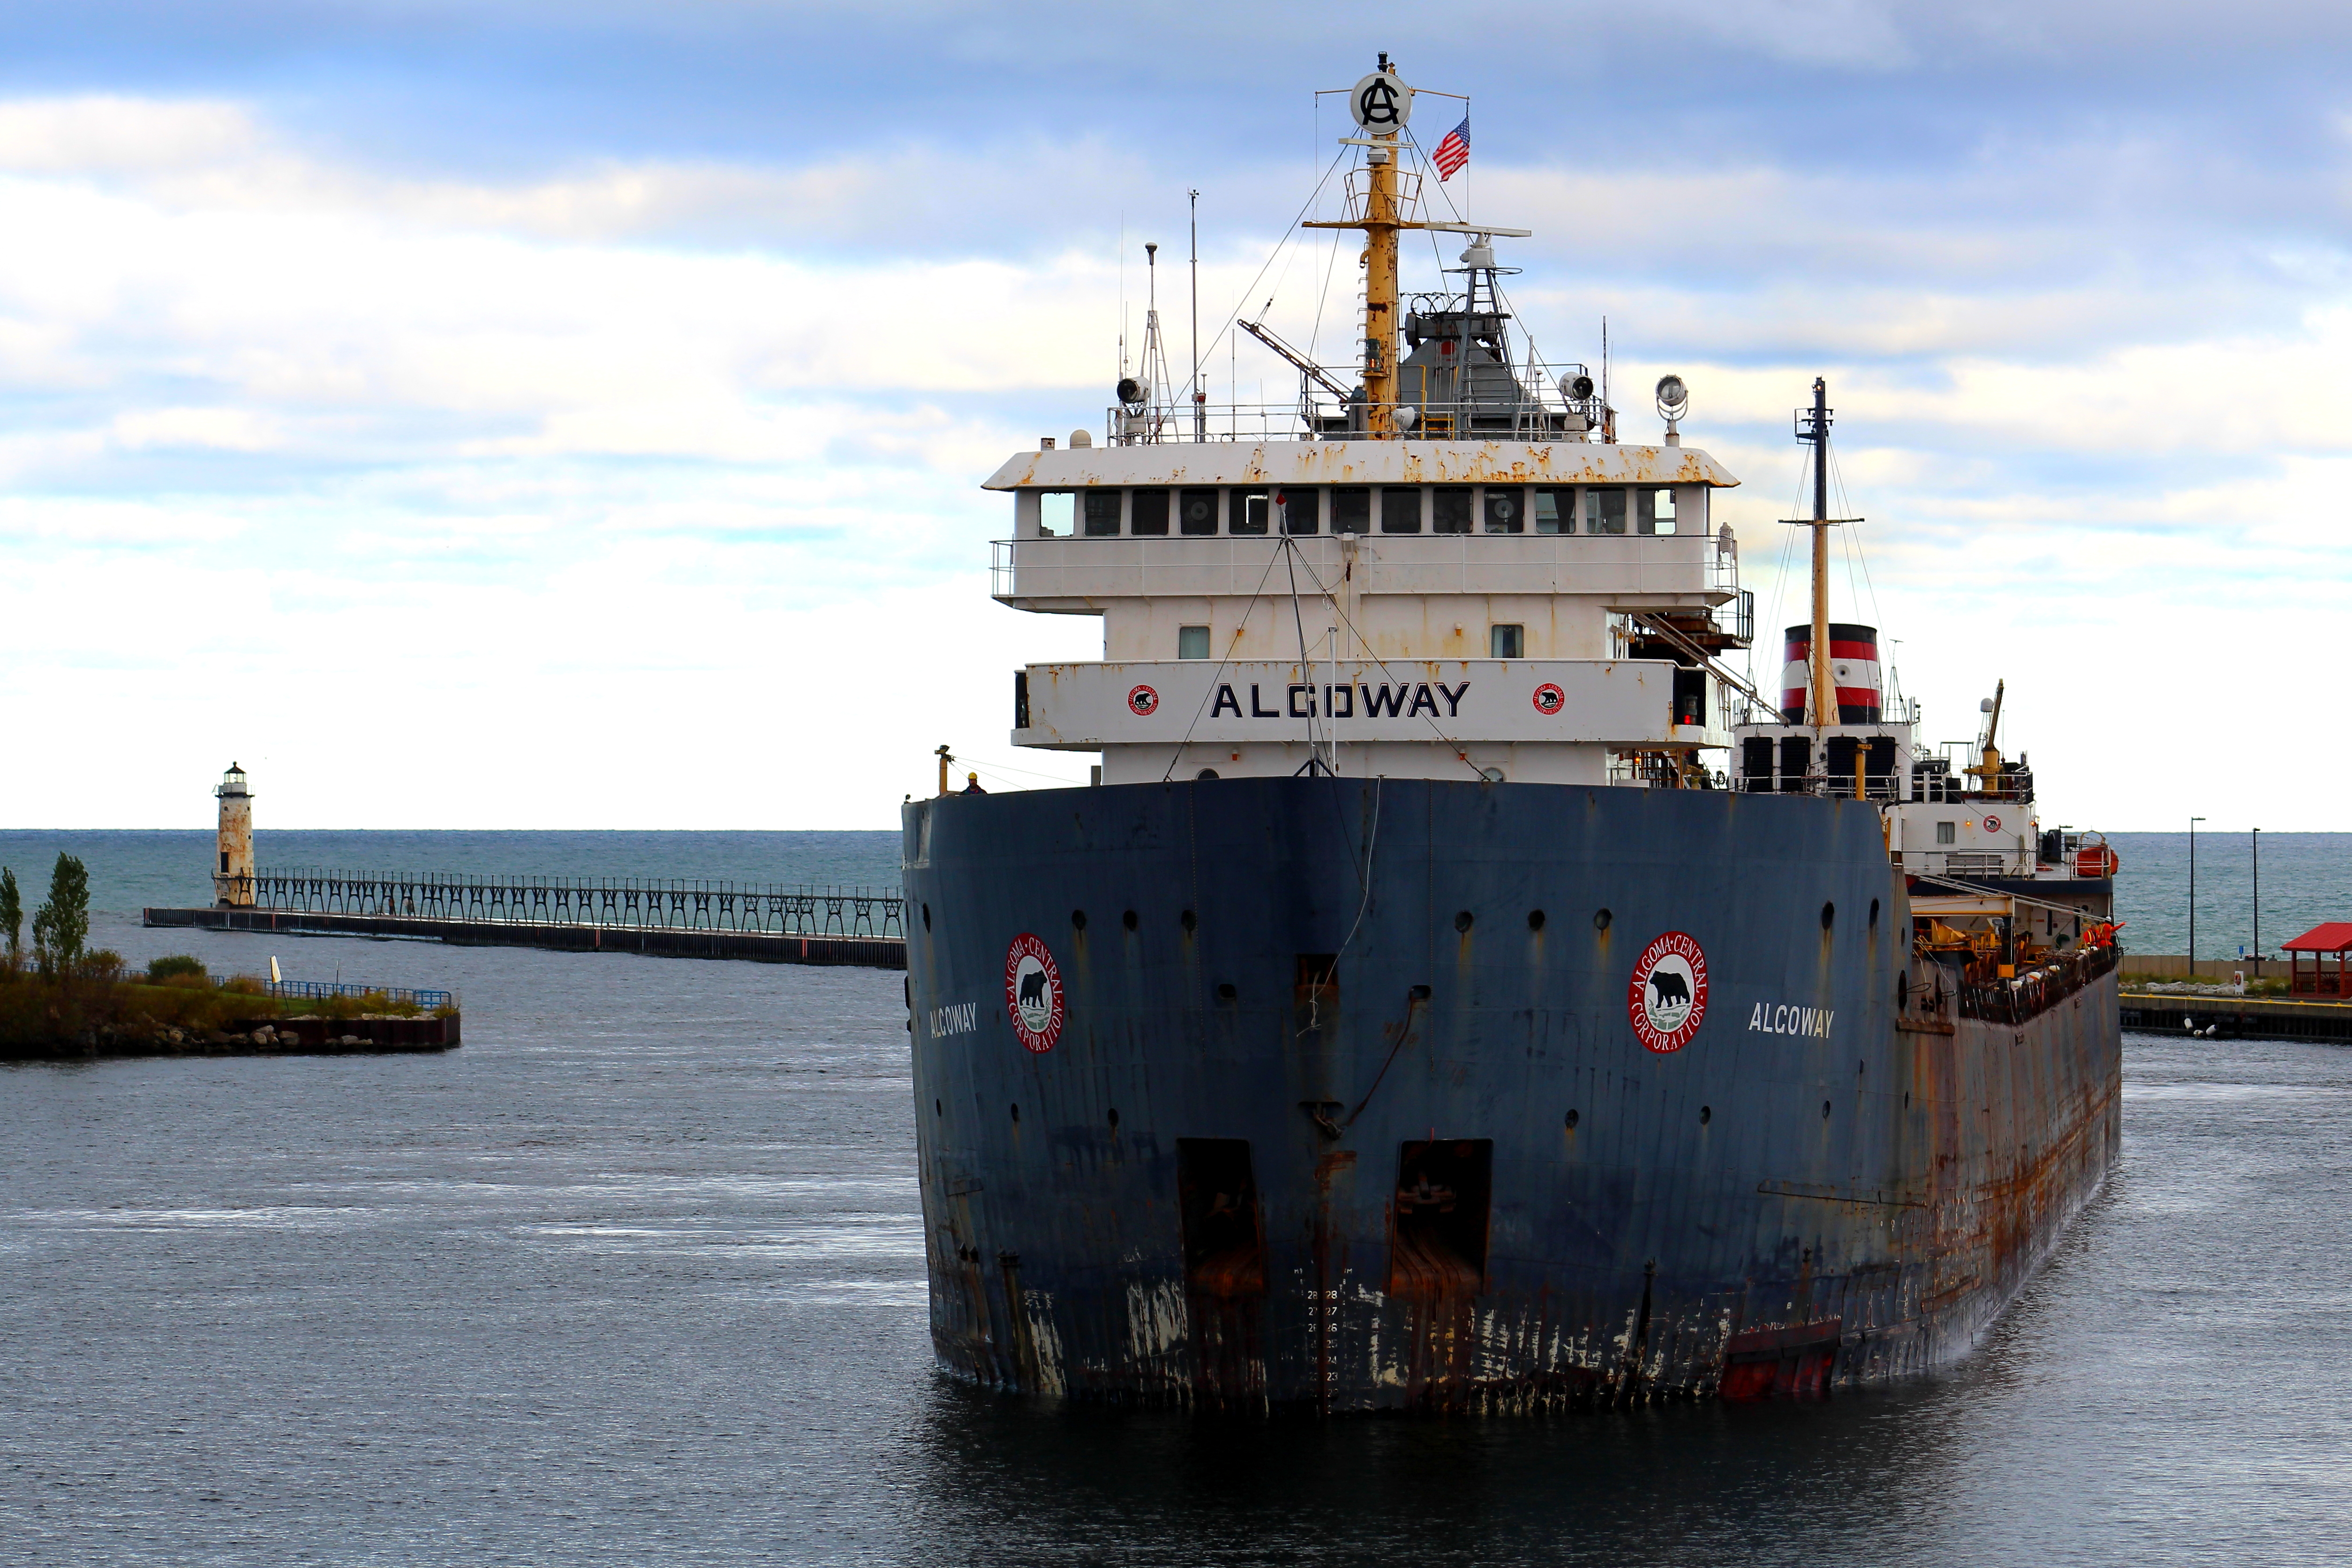 Freighter Algoway entering Manistee River Channel with the Fifth Avenue Lighthouse in the background